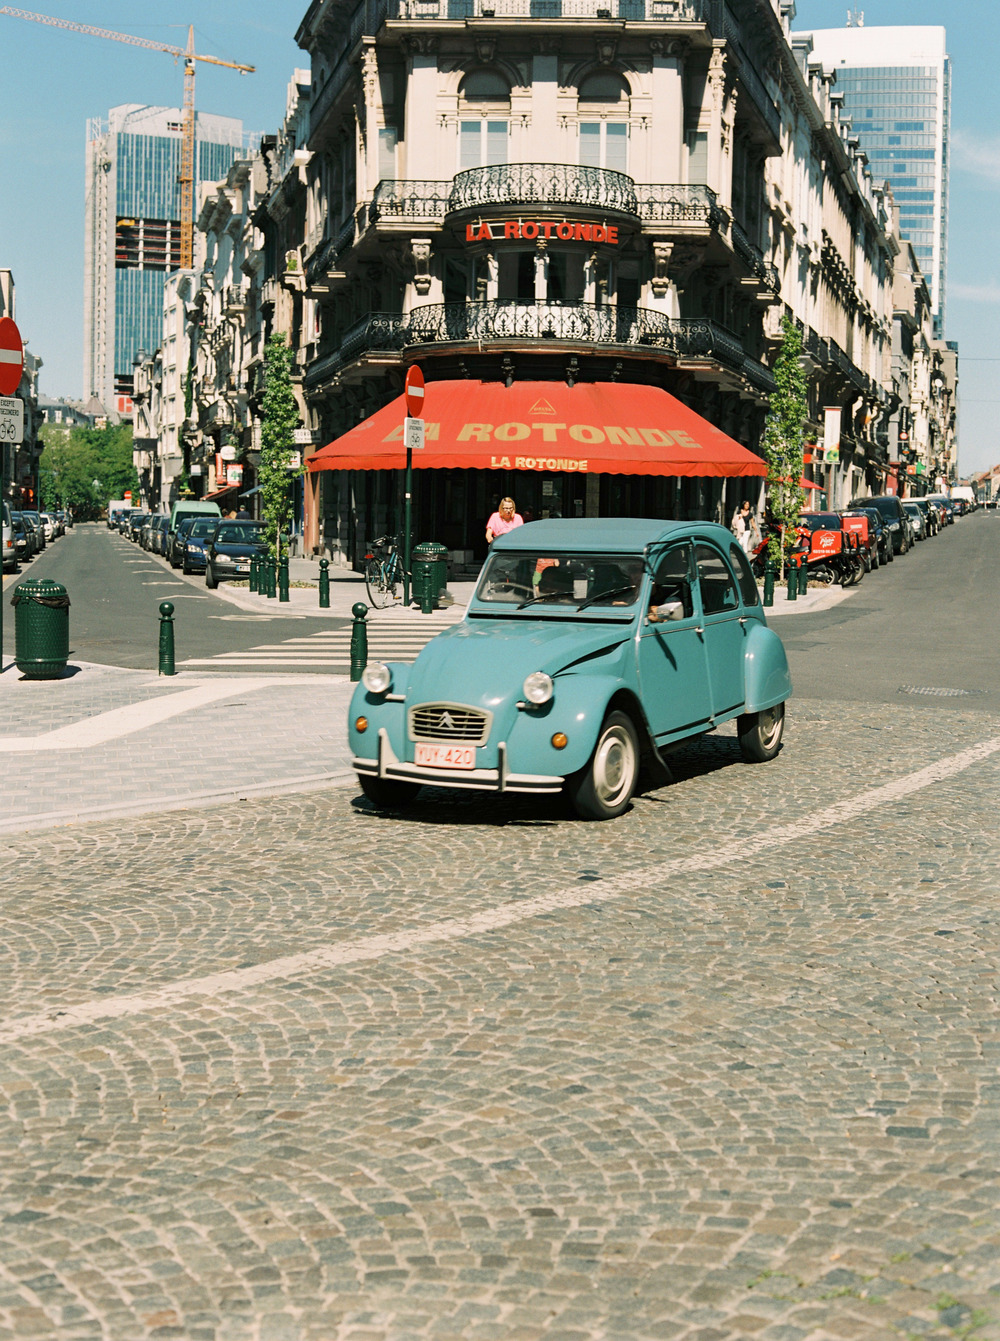 48 hours in brussels, driving a 2Cv may be?